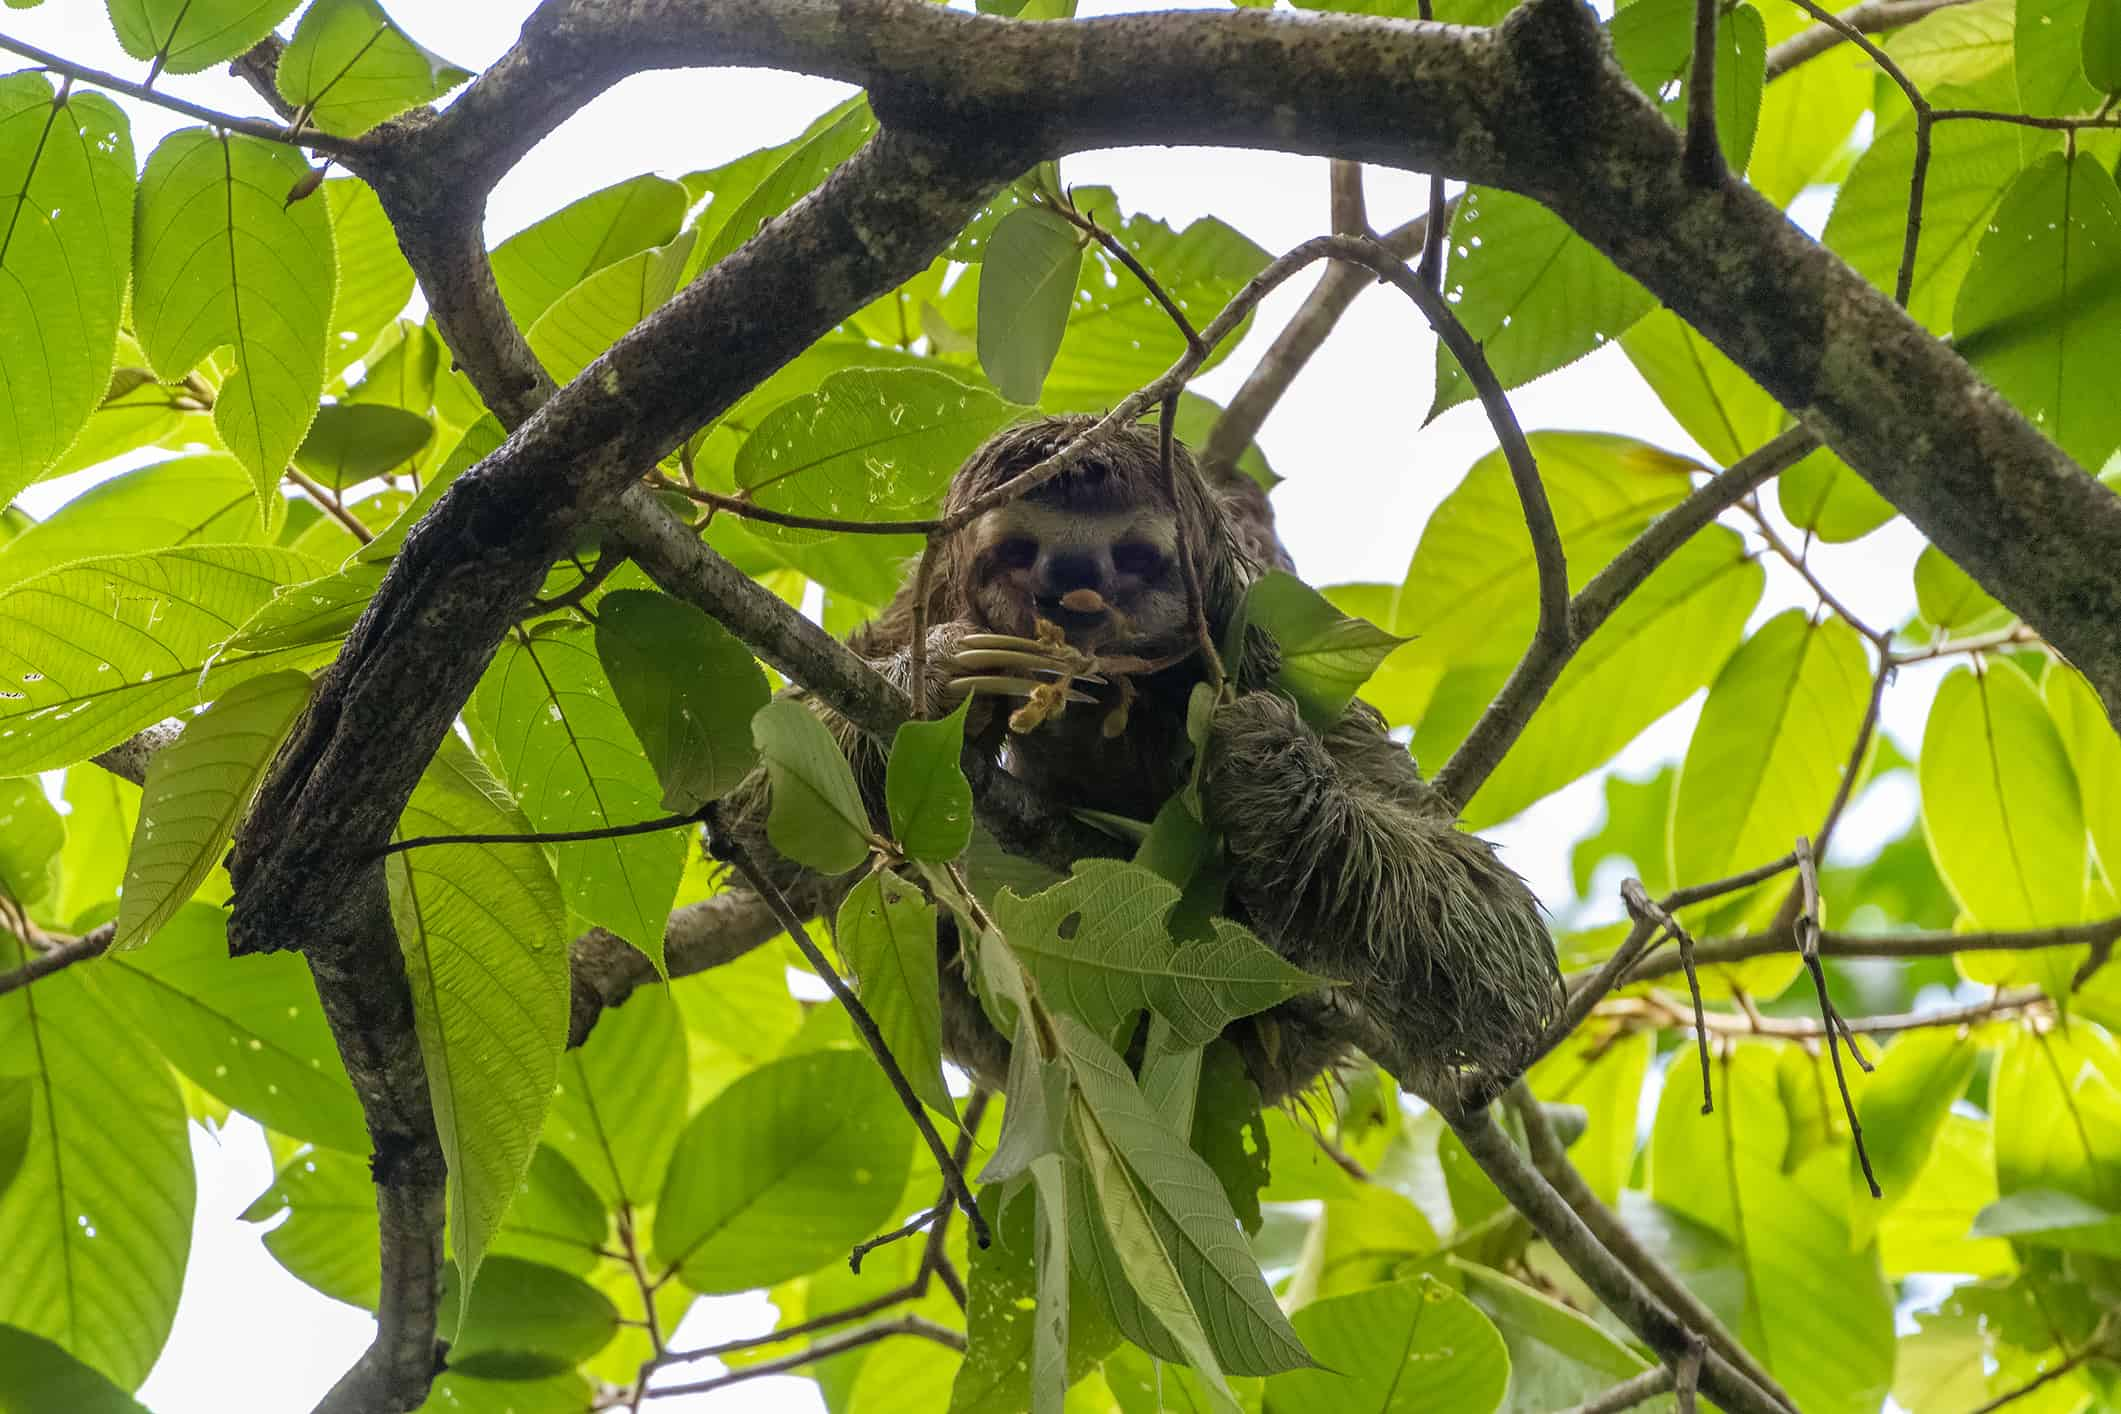 Three-toed Sloth (Bradypus infuscatus), taken in Costa Rica